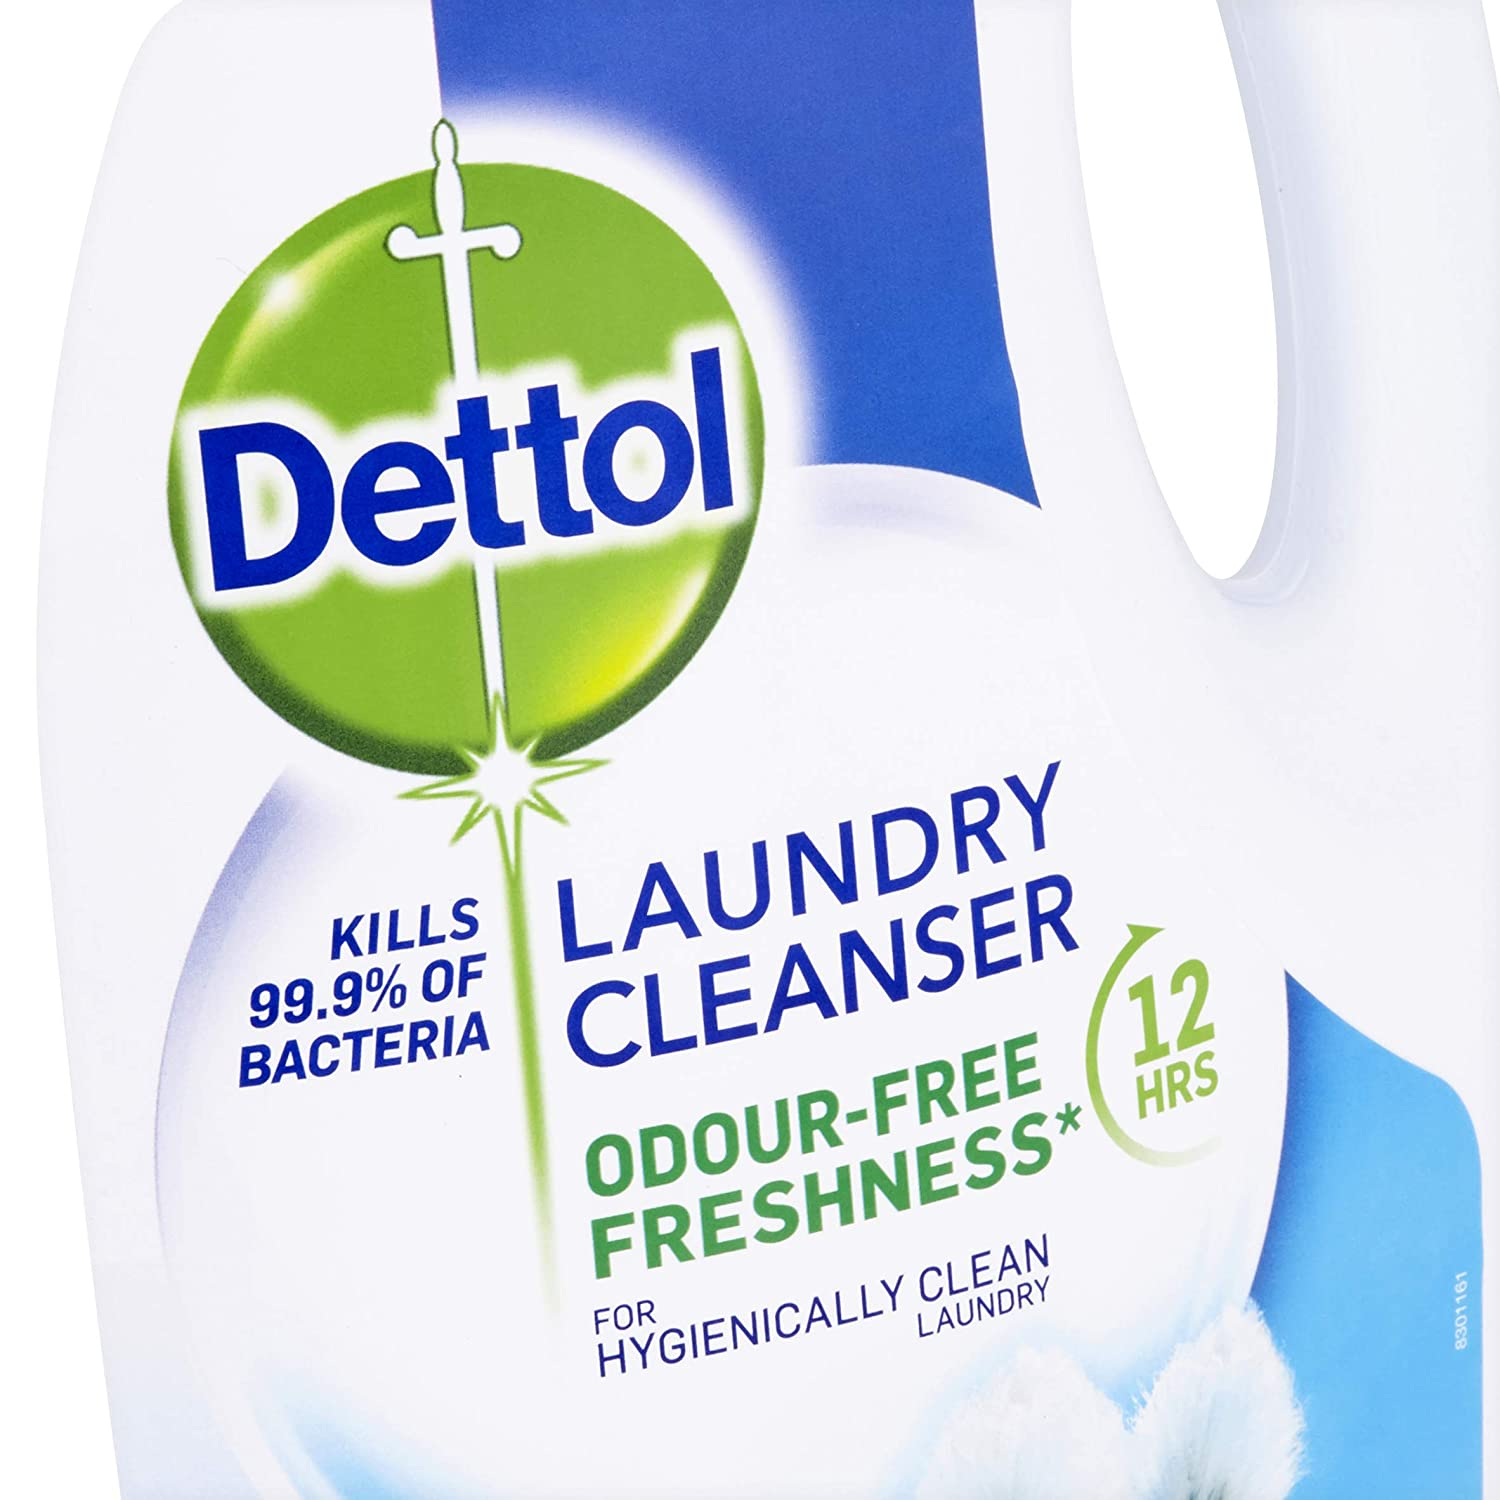 Dettol Antibacterial Laundry Cleanser Fresh Cotton 15 L Pack Of 4 Deep Cleanse Body Wash 400ml Pouch Health Personal Care